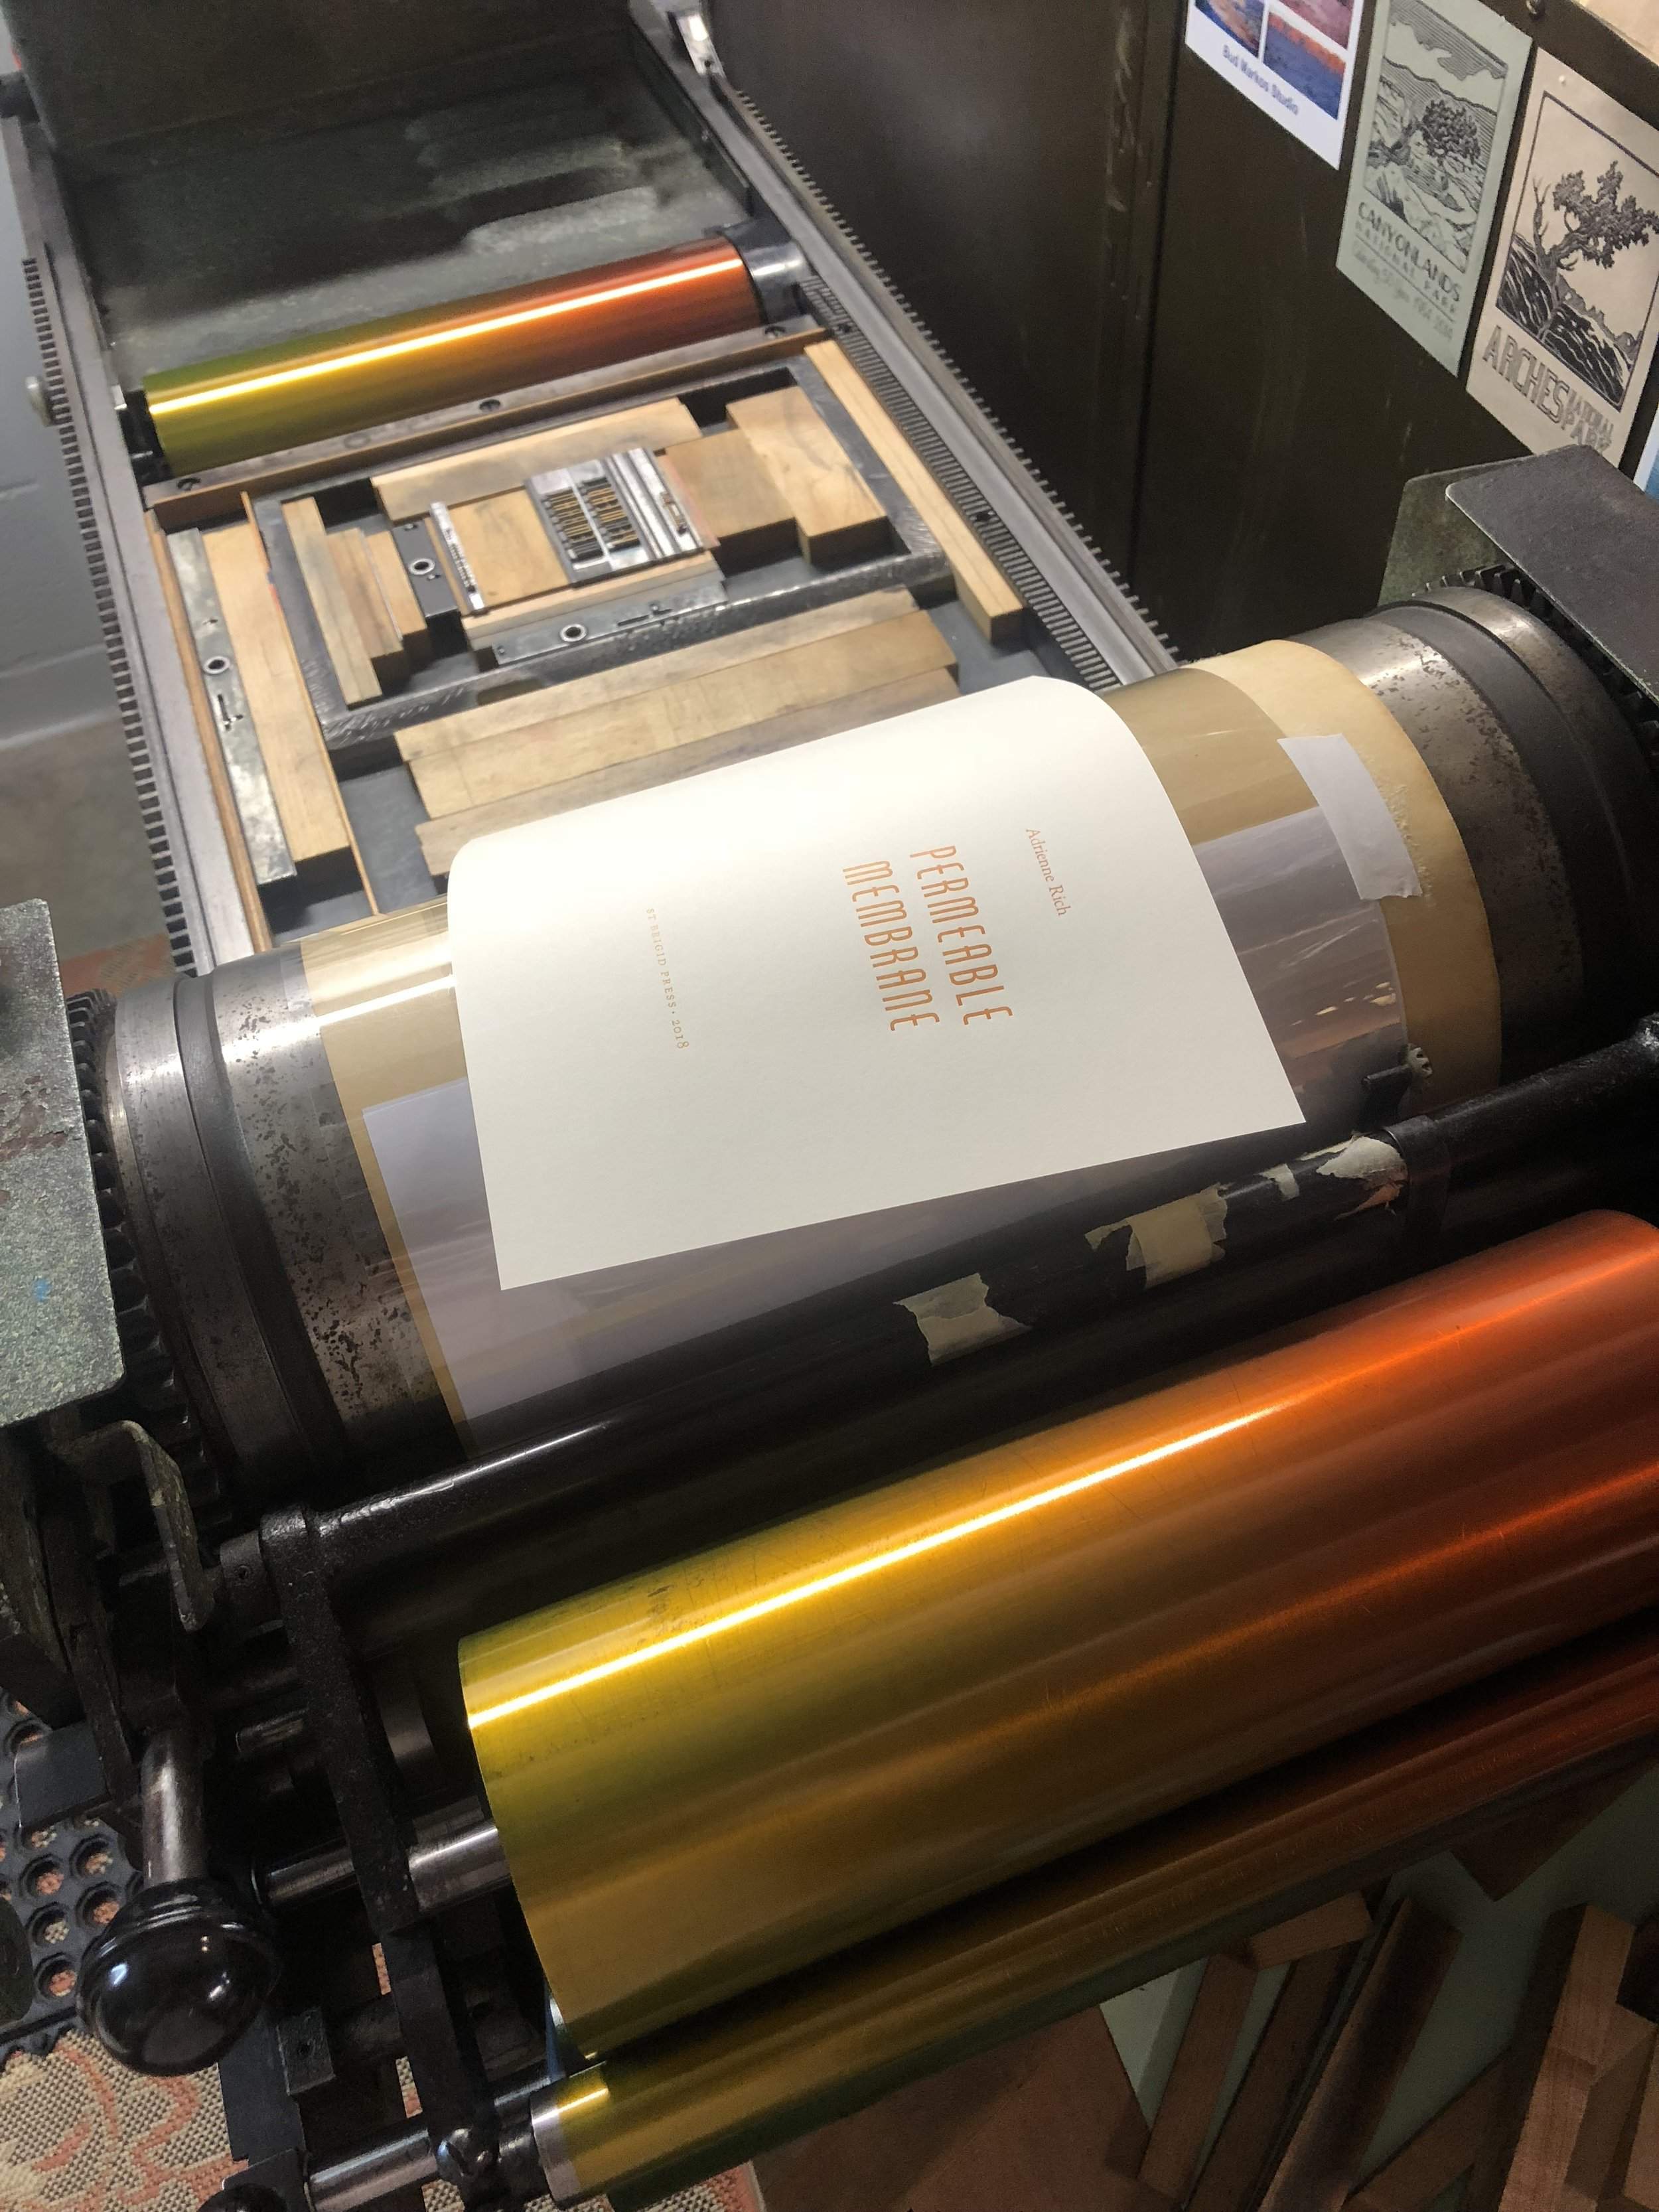 Printing the title page with a gradient of color from orange to yellow.